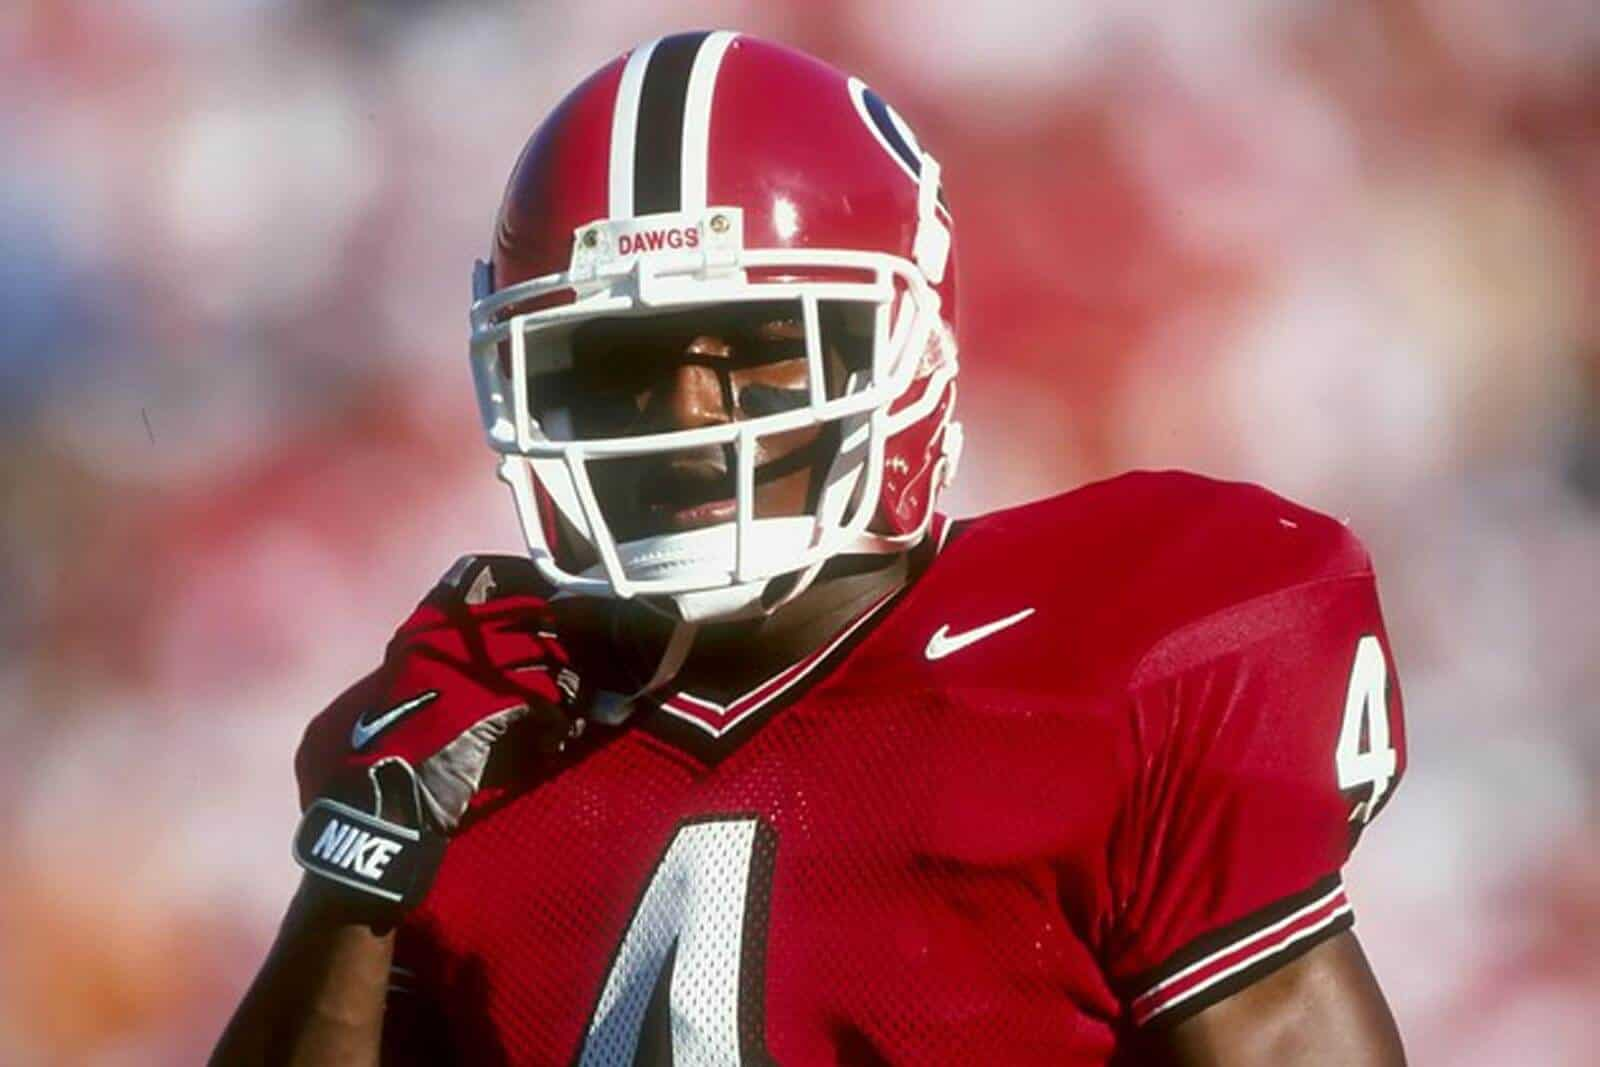 Champ Bailey named to 2017 SEC Football Legends class